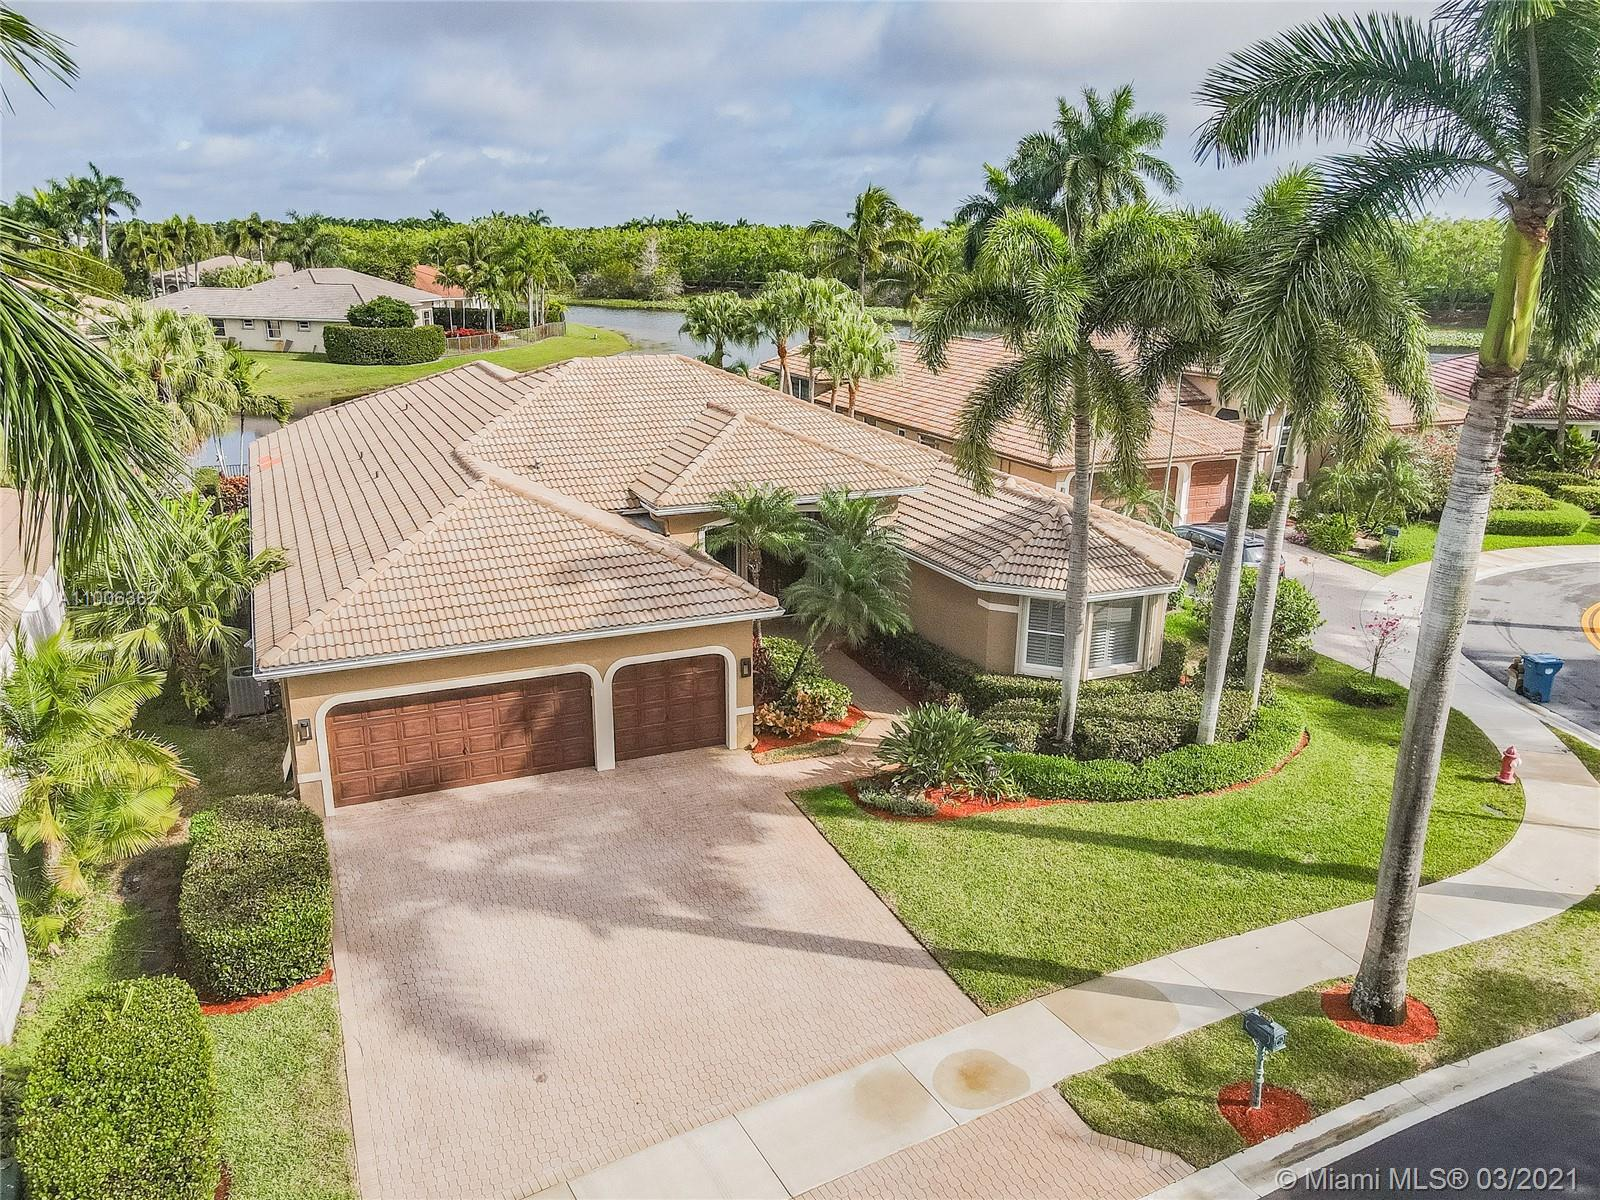 Come see this MAGNIFICENT lakefront-pool home with a 3 car garage in the exclusive prestigious community of Weston Hills, a 24-hour guard gated community. This home features 5 bedrooms, 3 bathrooms, large laundry room, unique master bath with wet room and free standing tub, marble tile, custom walk-in closet, mosquito sprayer in the backyard, beautiful newly renovated pool with diamond brite, tile and pool deck. Renovated kitchen features Stainless steel appliances, cherry wood cabinets, quartz countertops, with an island. Crown molding in the entire house. Accordion shutters throughout. Oversize lot.  2 A/C units recently replaced in 2015. Bring your buyers to the open house March 6, 2021!